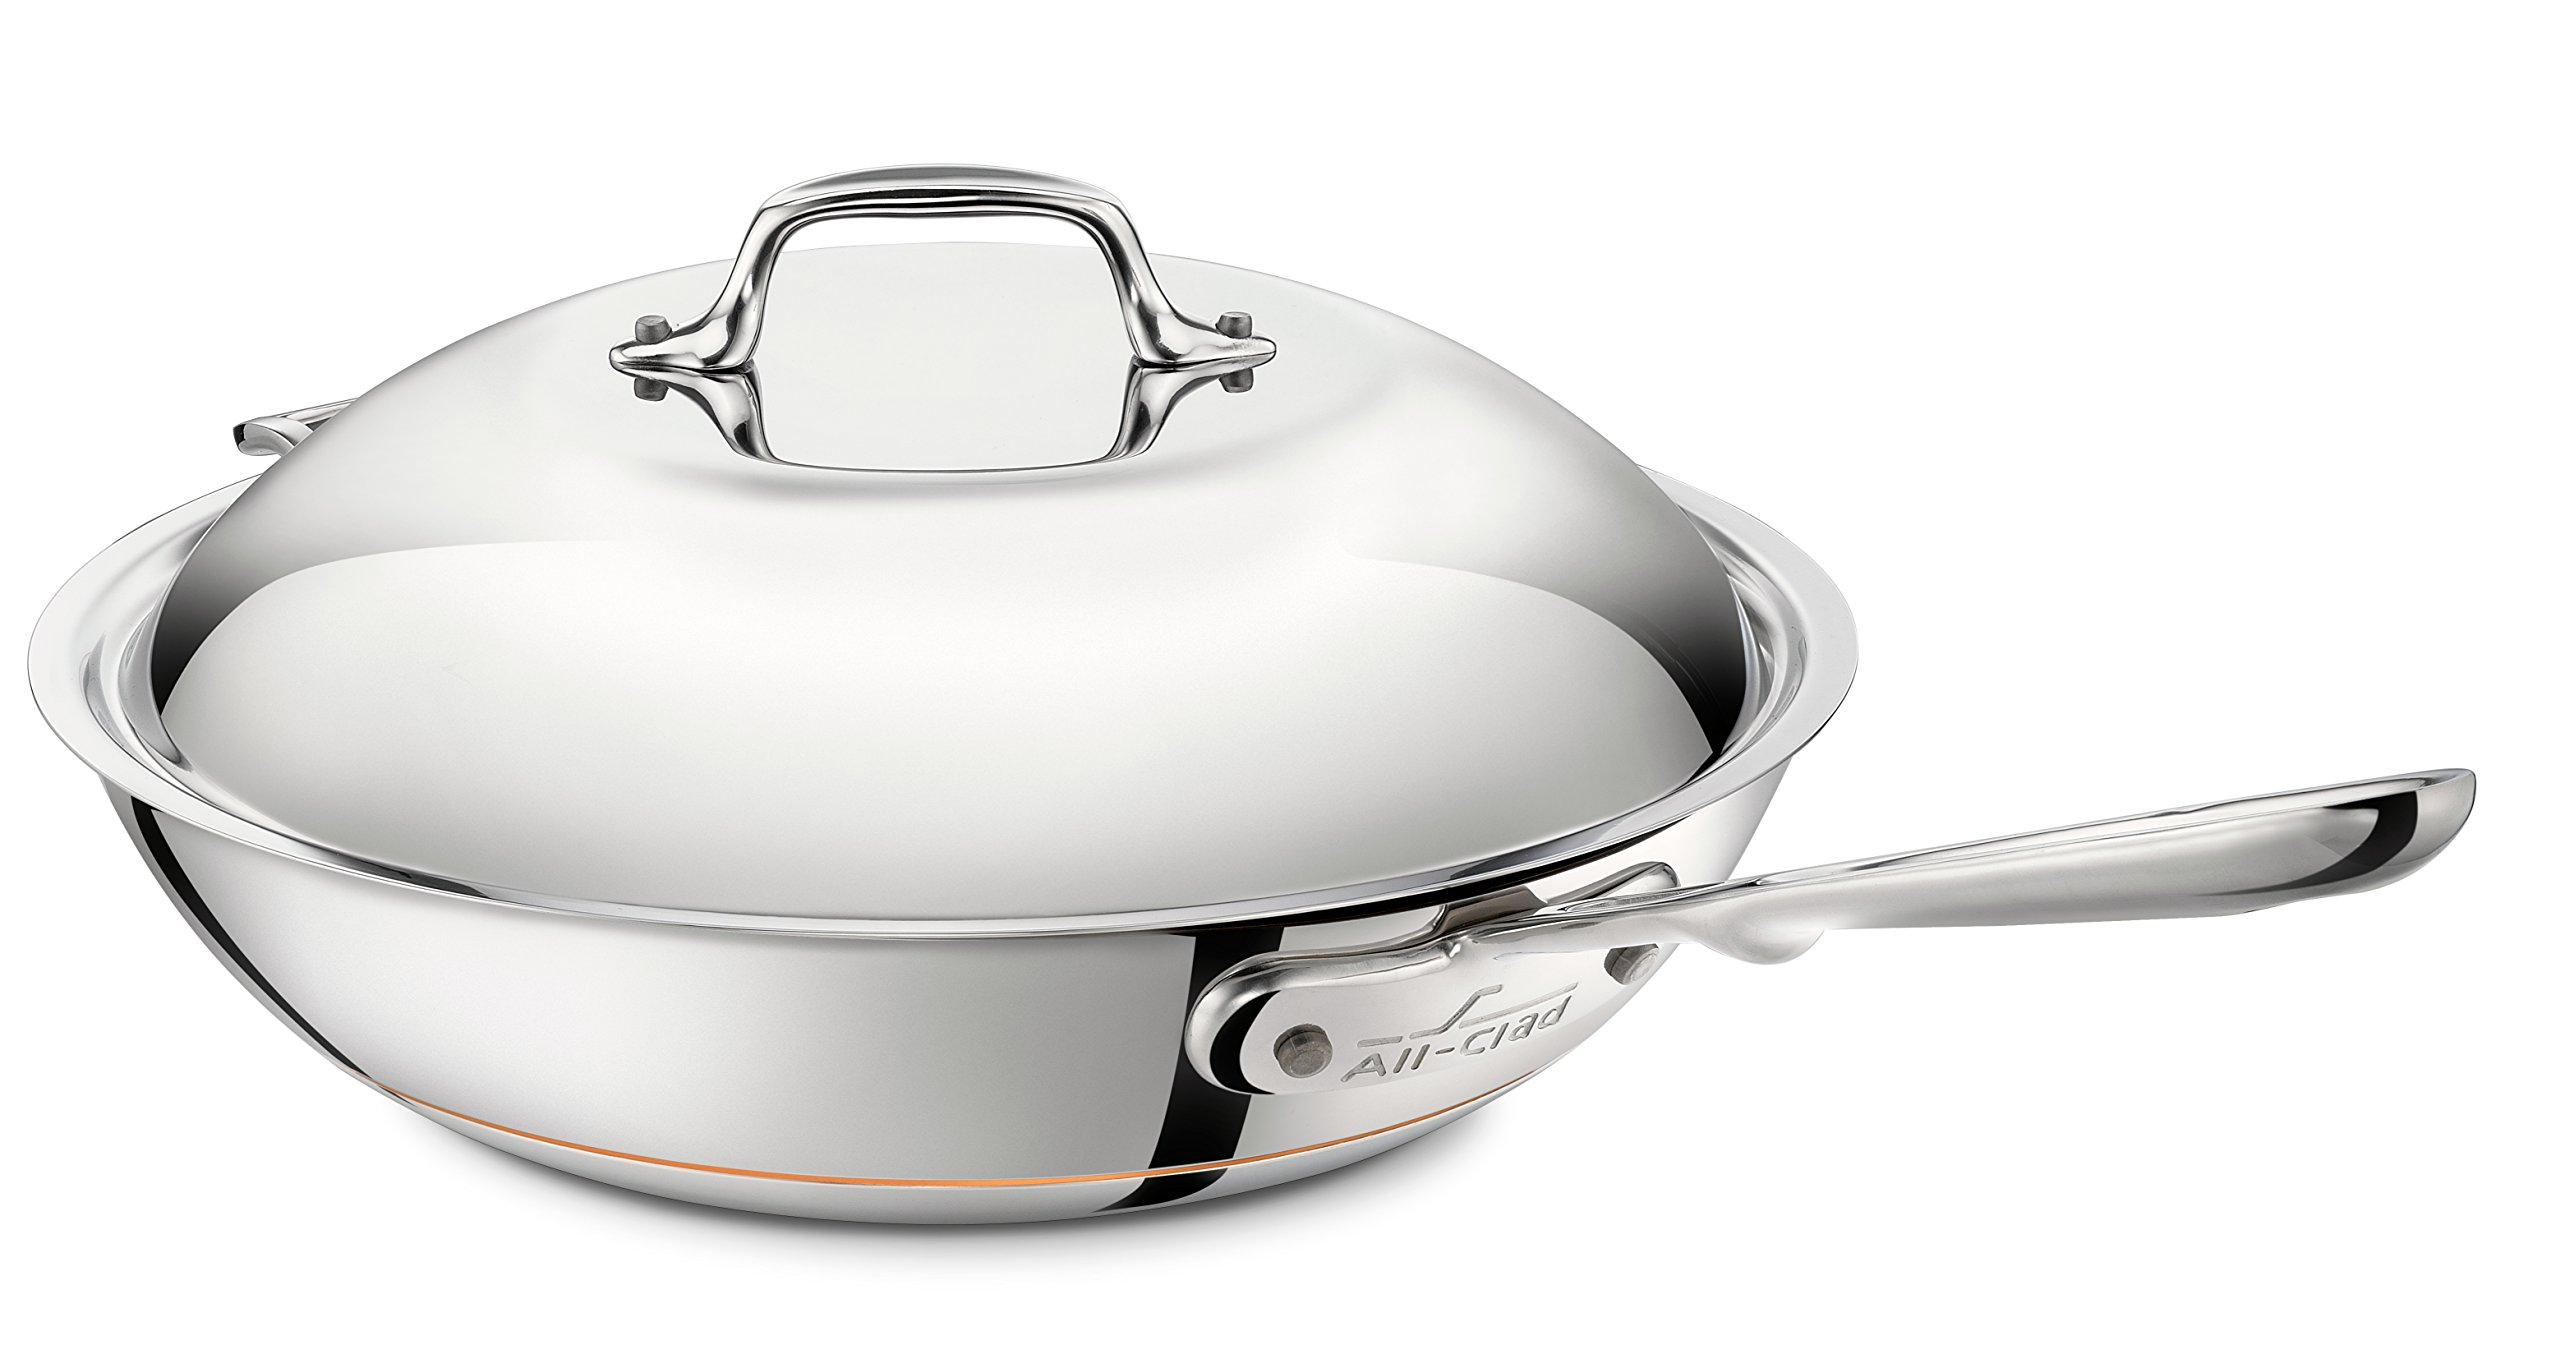 All-Clad 6412 SS Copper Core 5-Ply Bonded Dishwasher Safe Chefs Pan / Cookware, 12-Inch, Silver by All-Clad